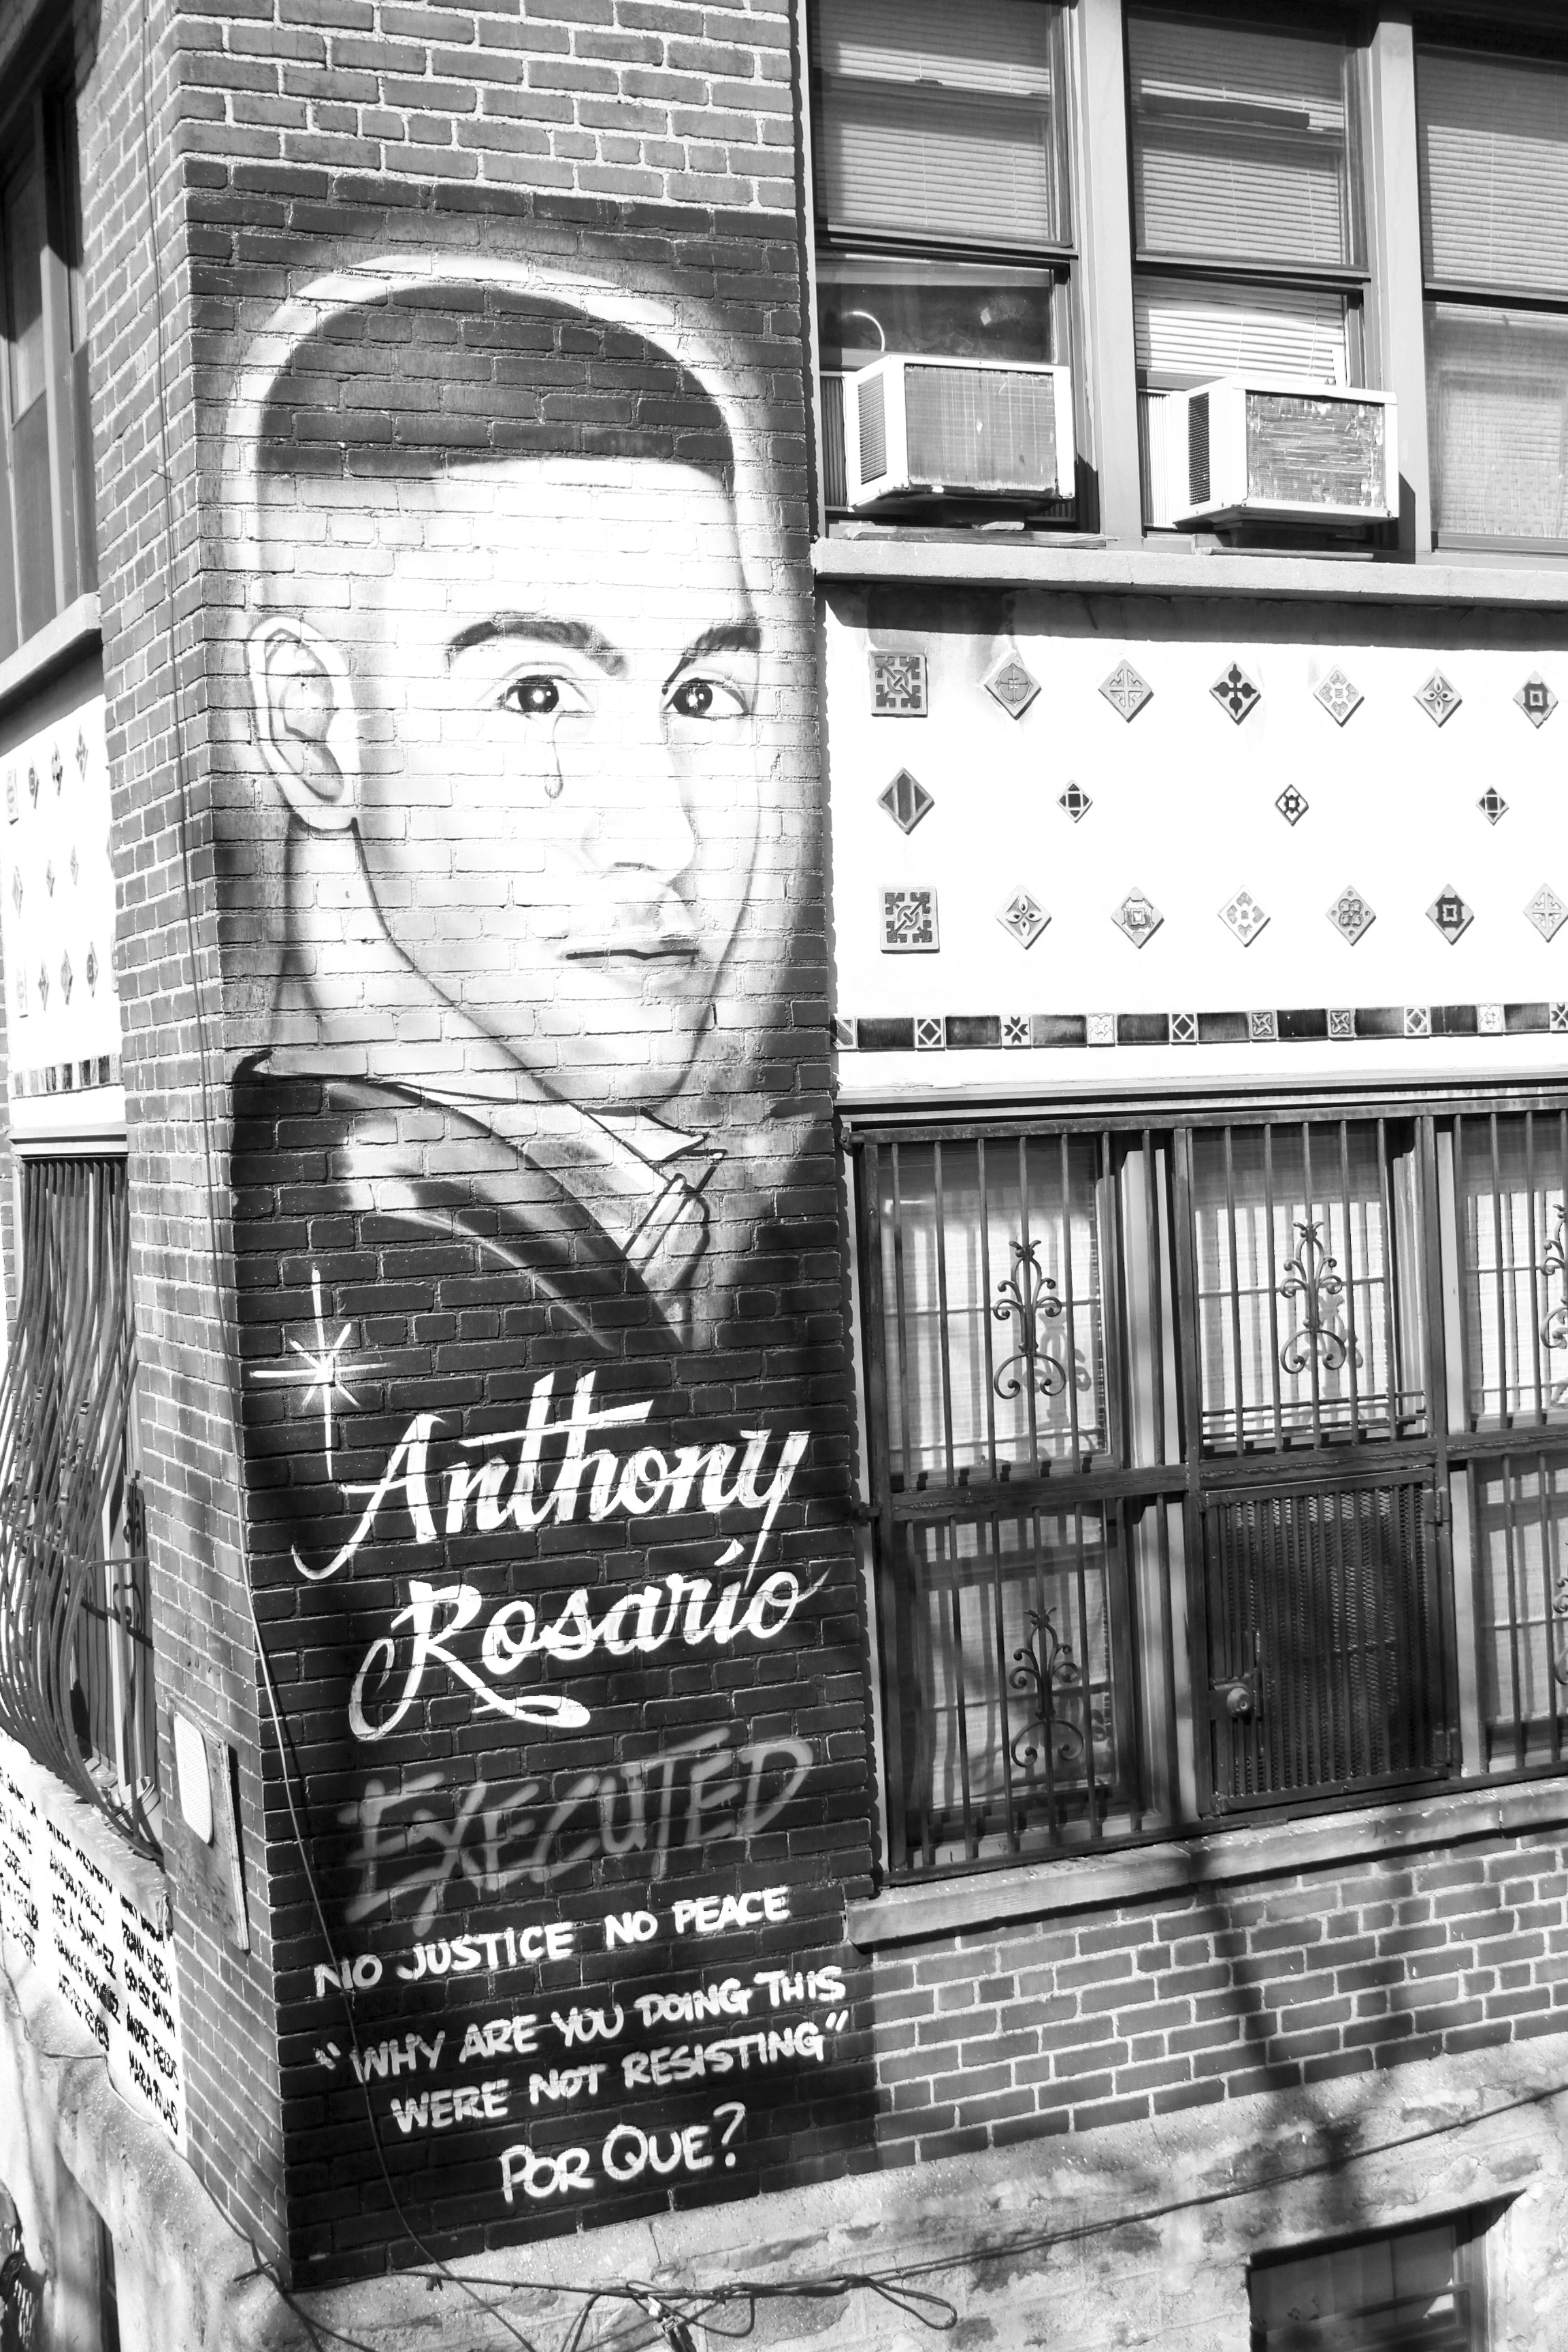 STOLEN LIVES & RESURRECTION : MARGARITA ROSARIO RESURRECTS HER SON ANTHONY BAEZ THROUGH ART PLACED ON THEIR HOME